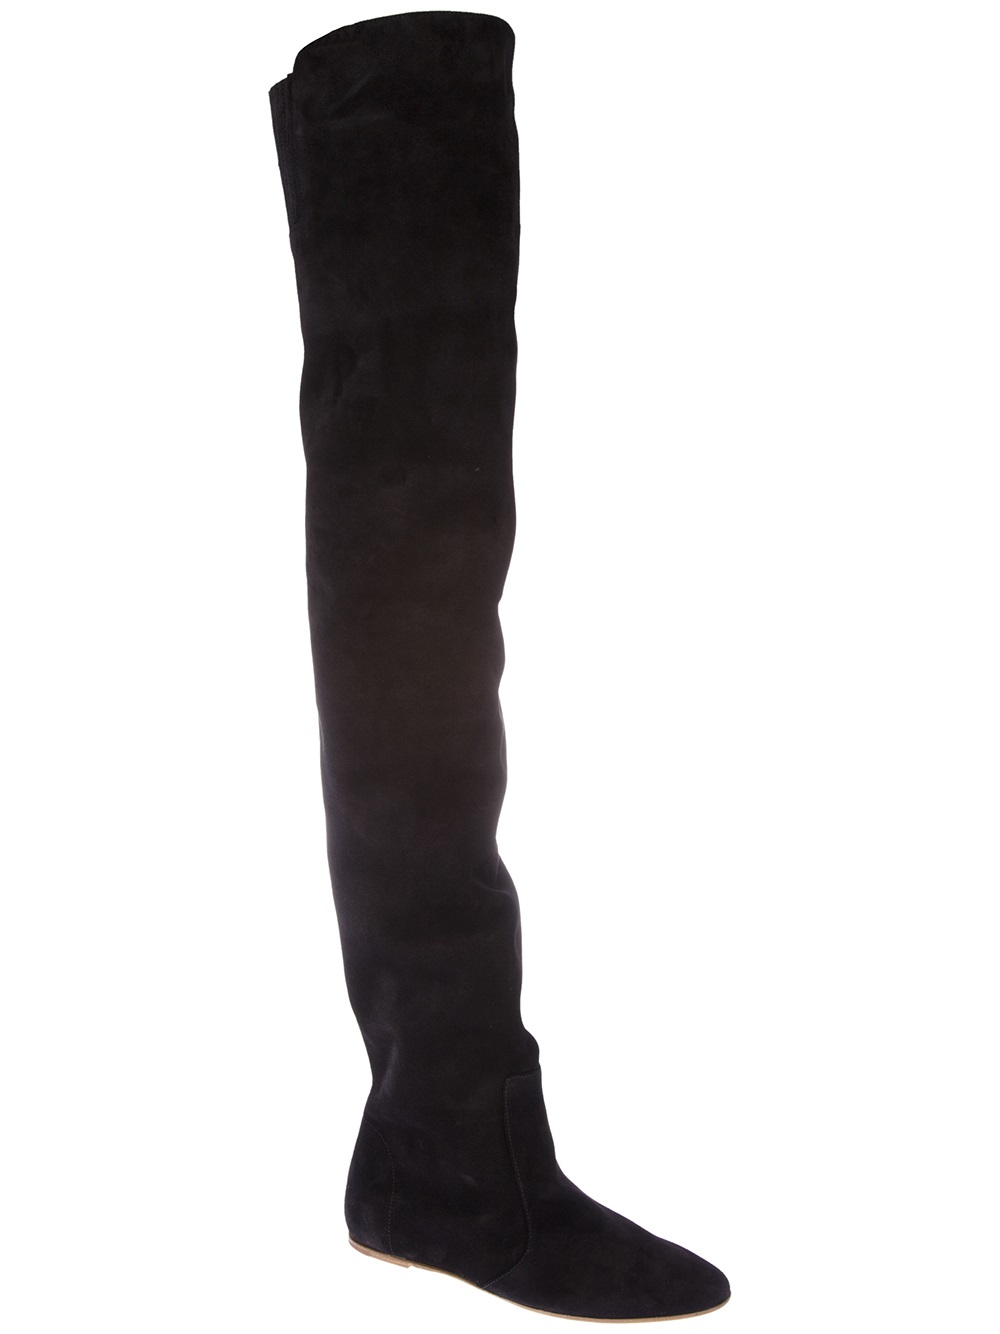 marant thigh high boot in black lyst